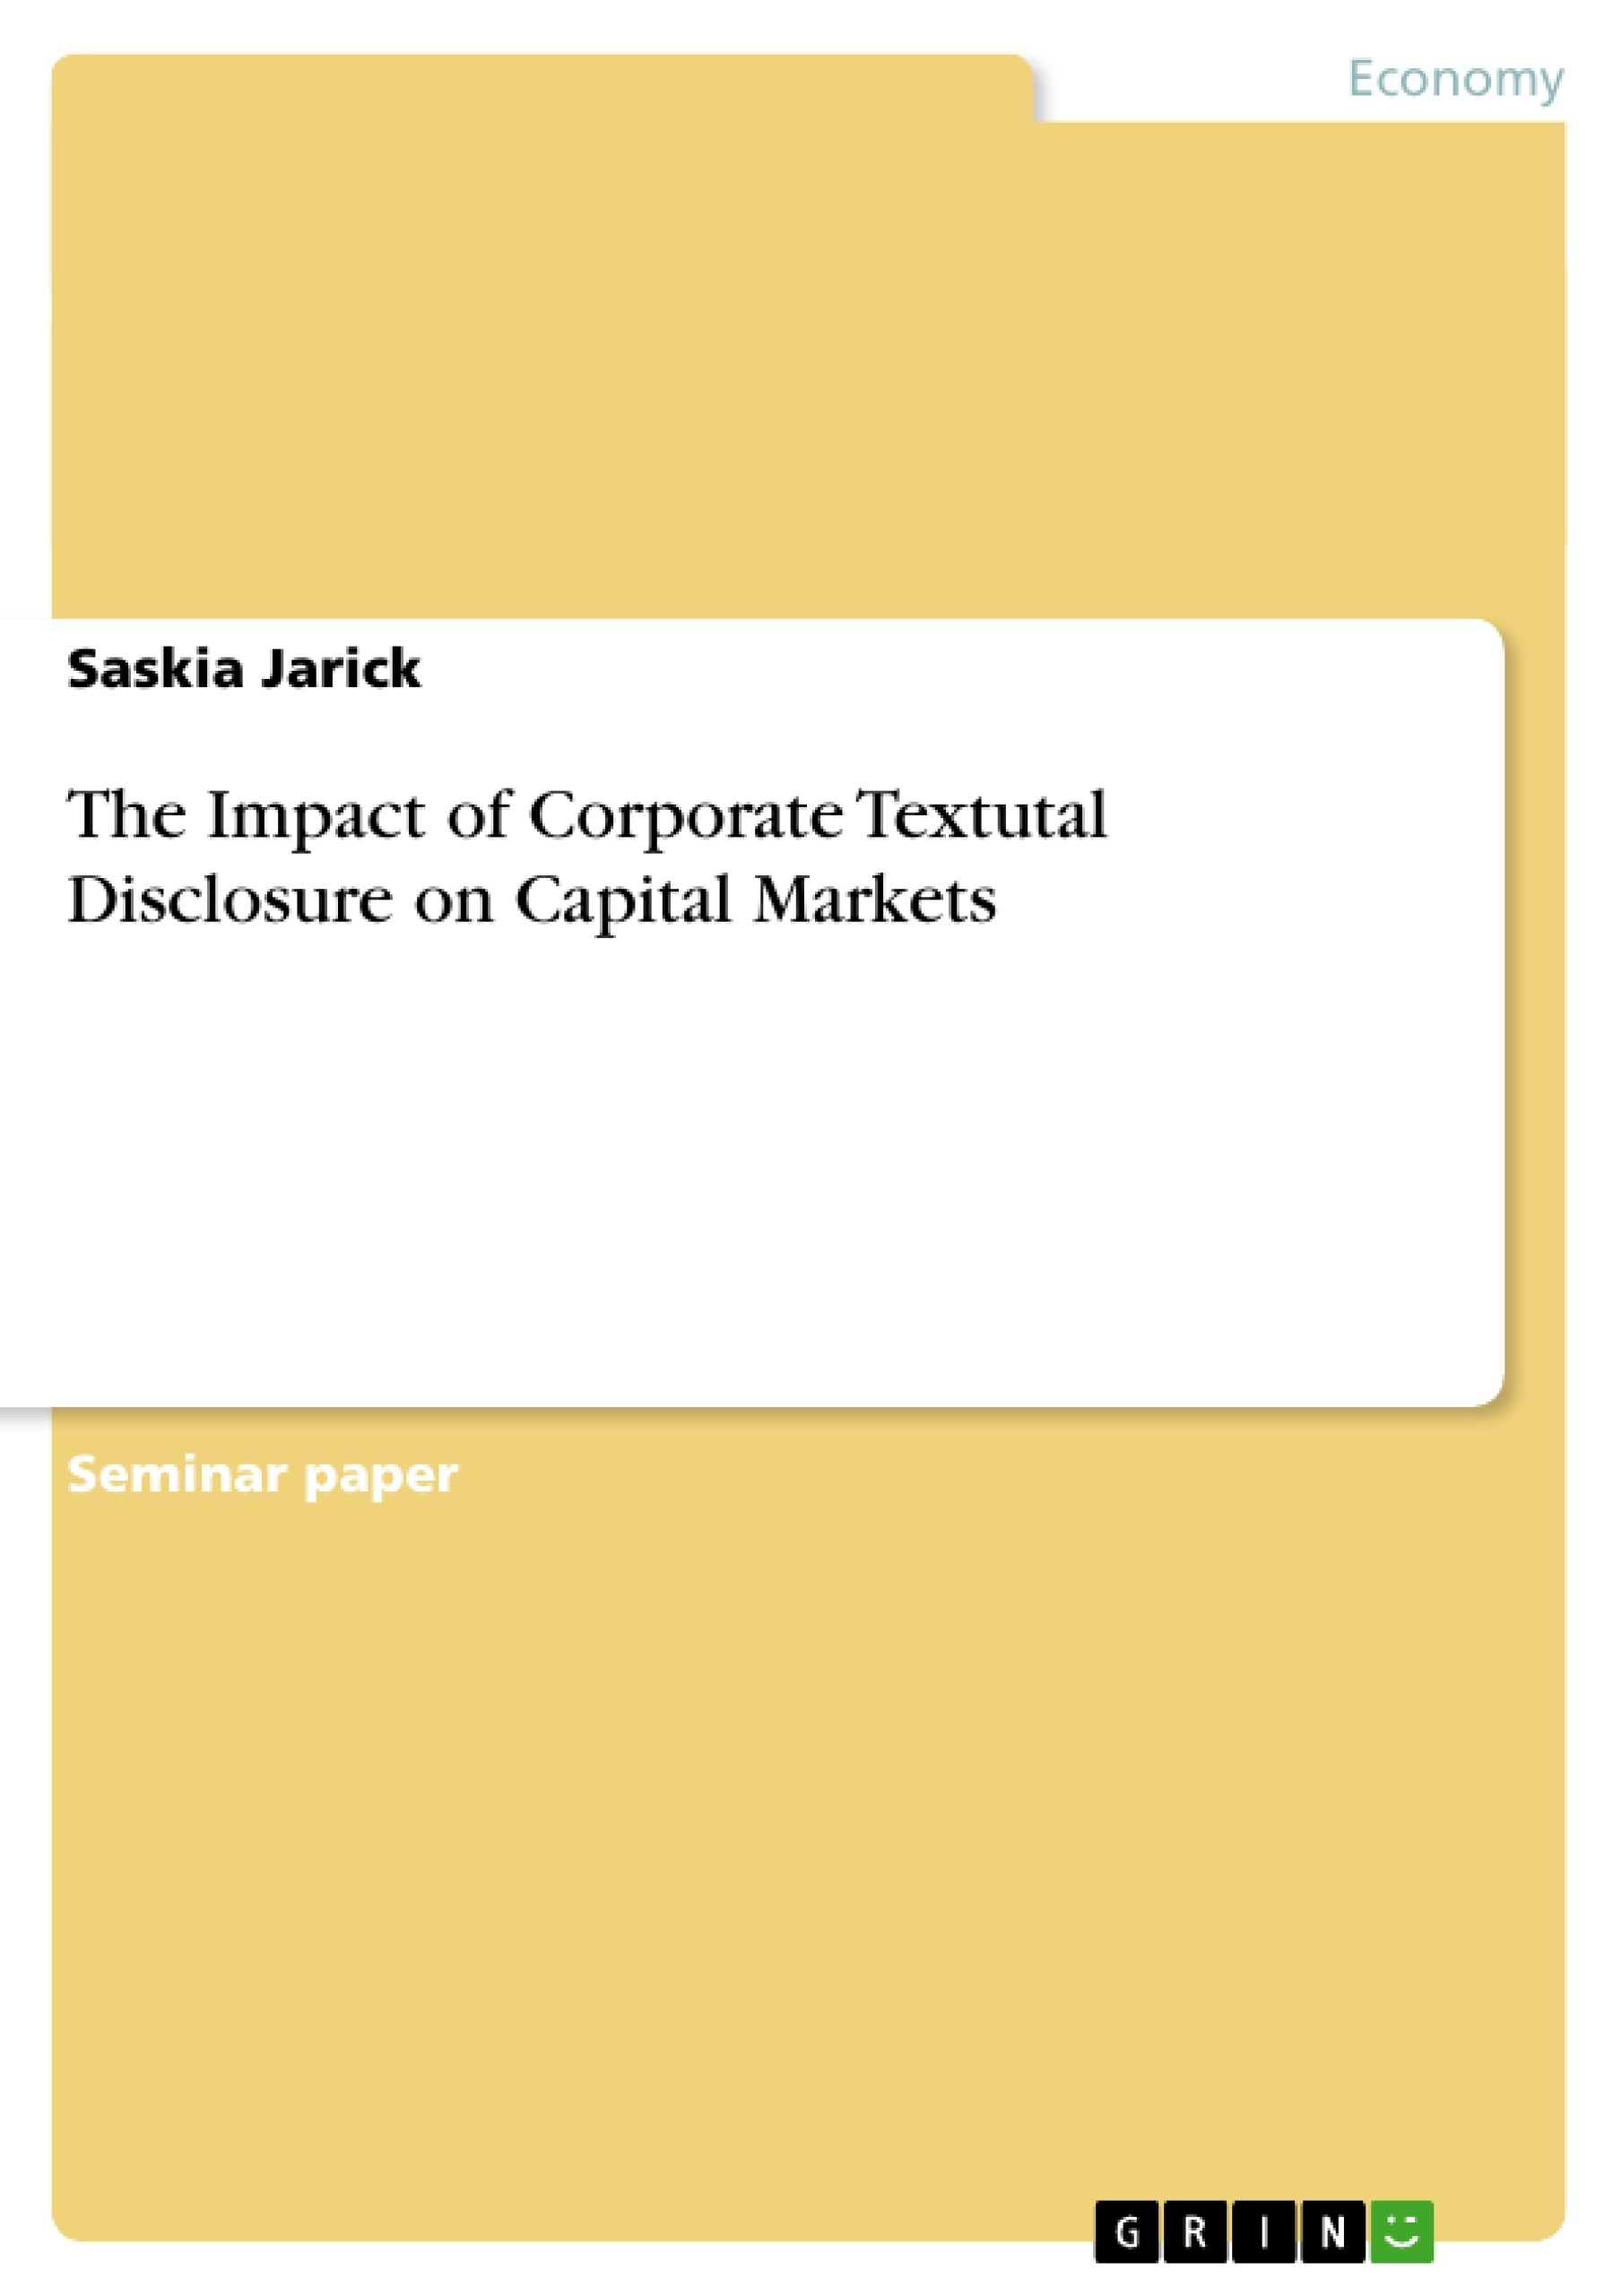 Title: The Impact of Corporate Textutal Disclosure on Capital Markets